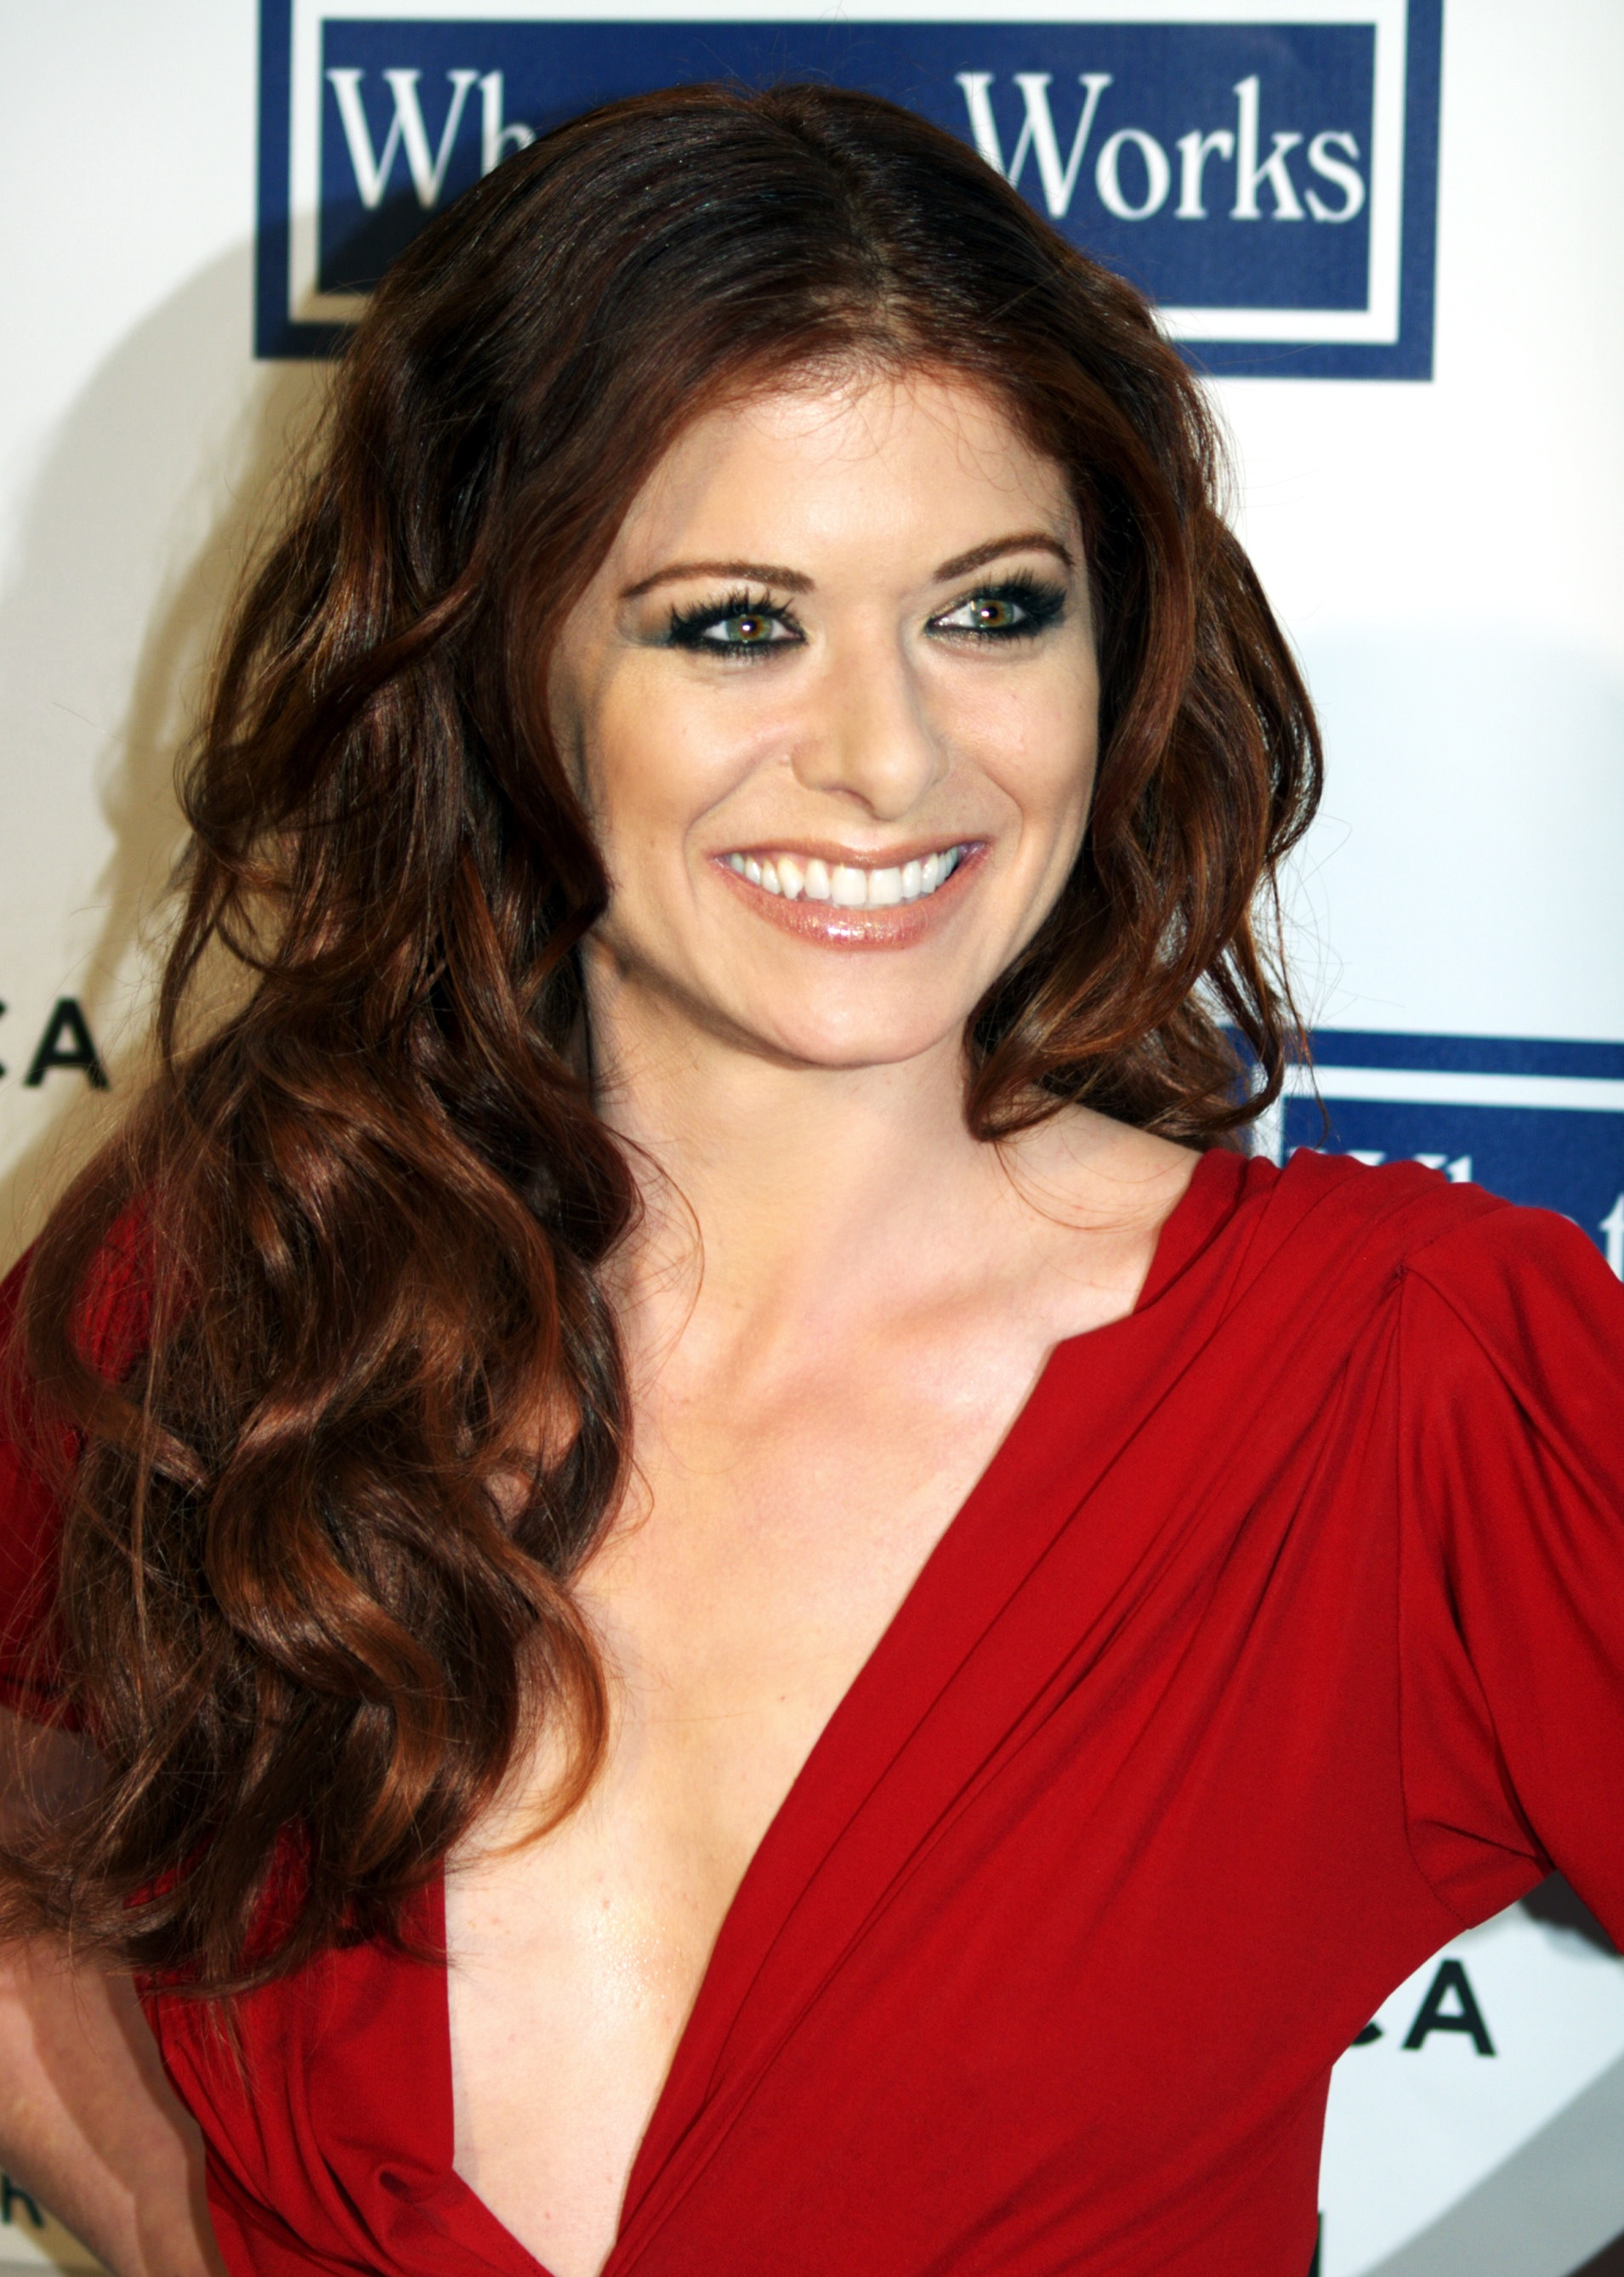 Debra Messing - Wallpaper Gallery